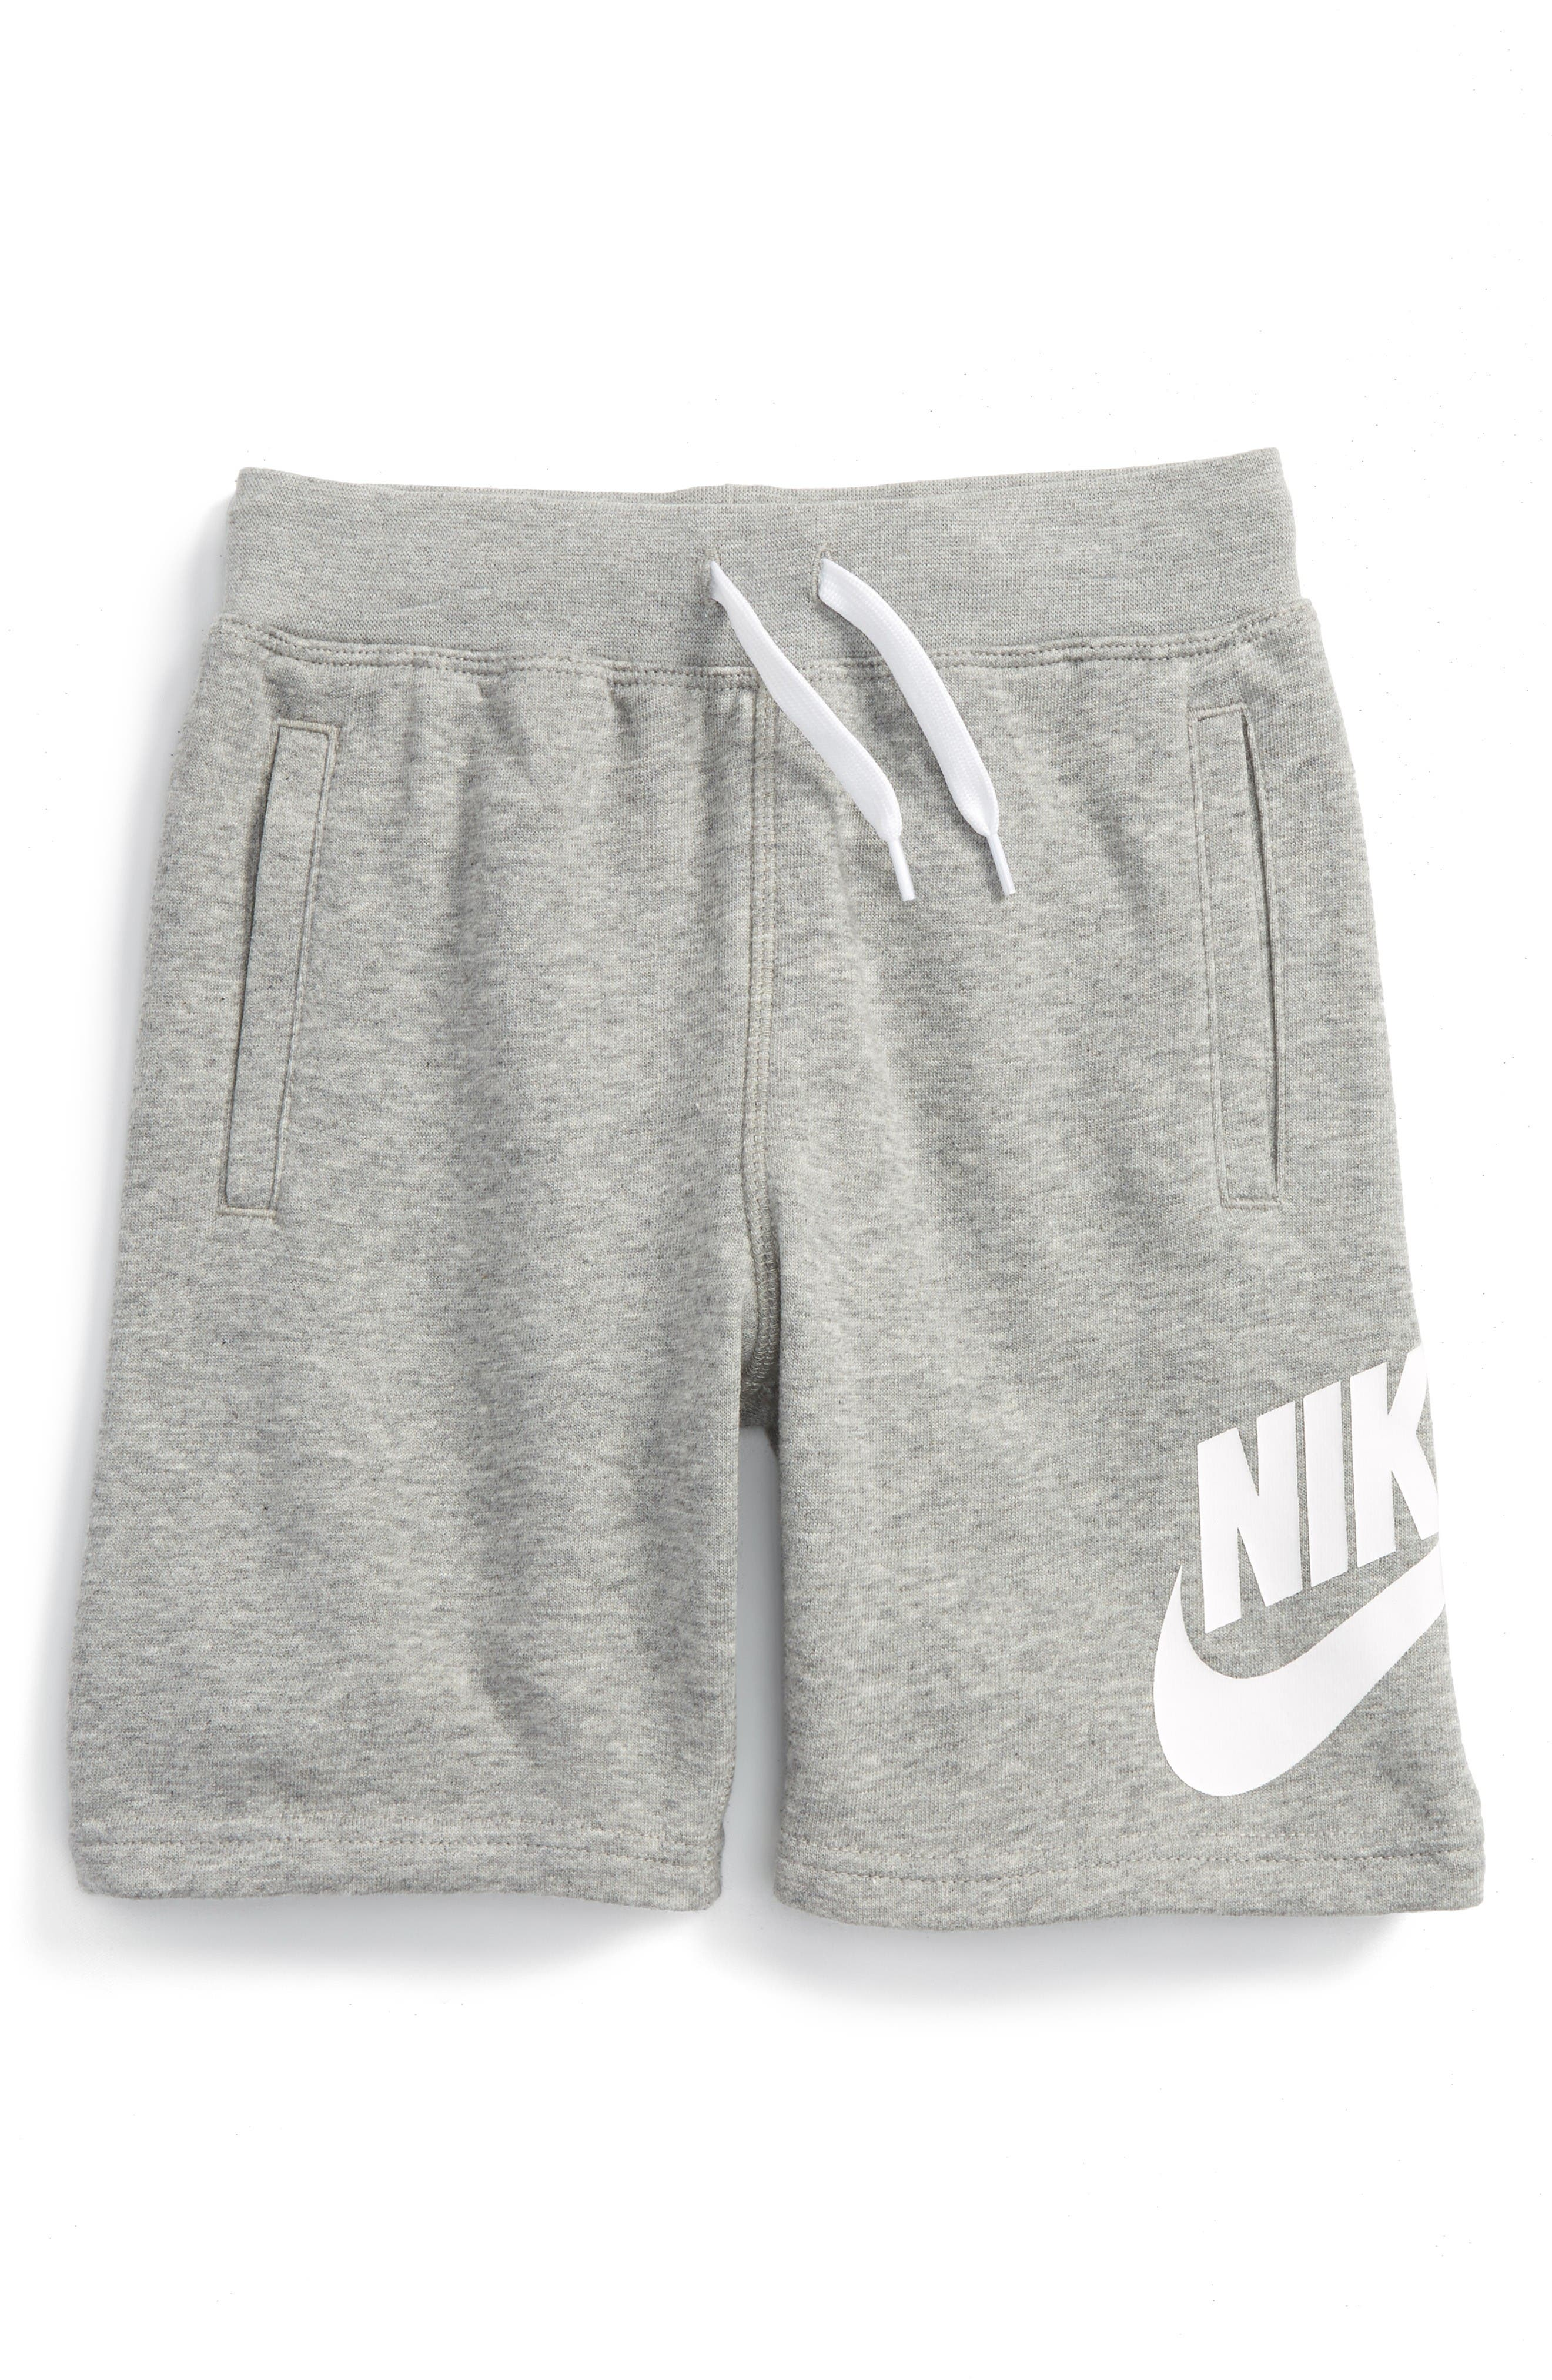 Alumni French Terry Knit Shorts,                         Main,                         color, Heather Reflux